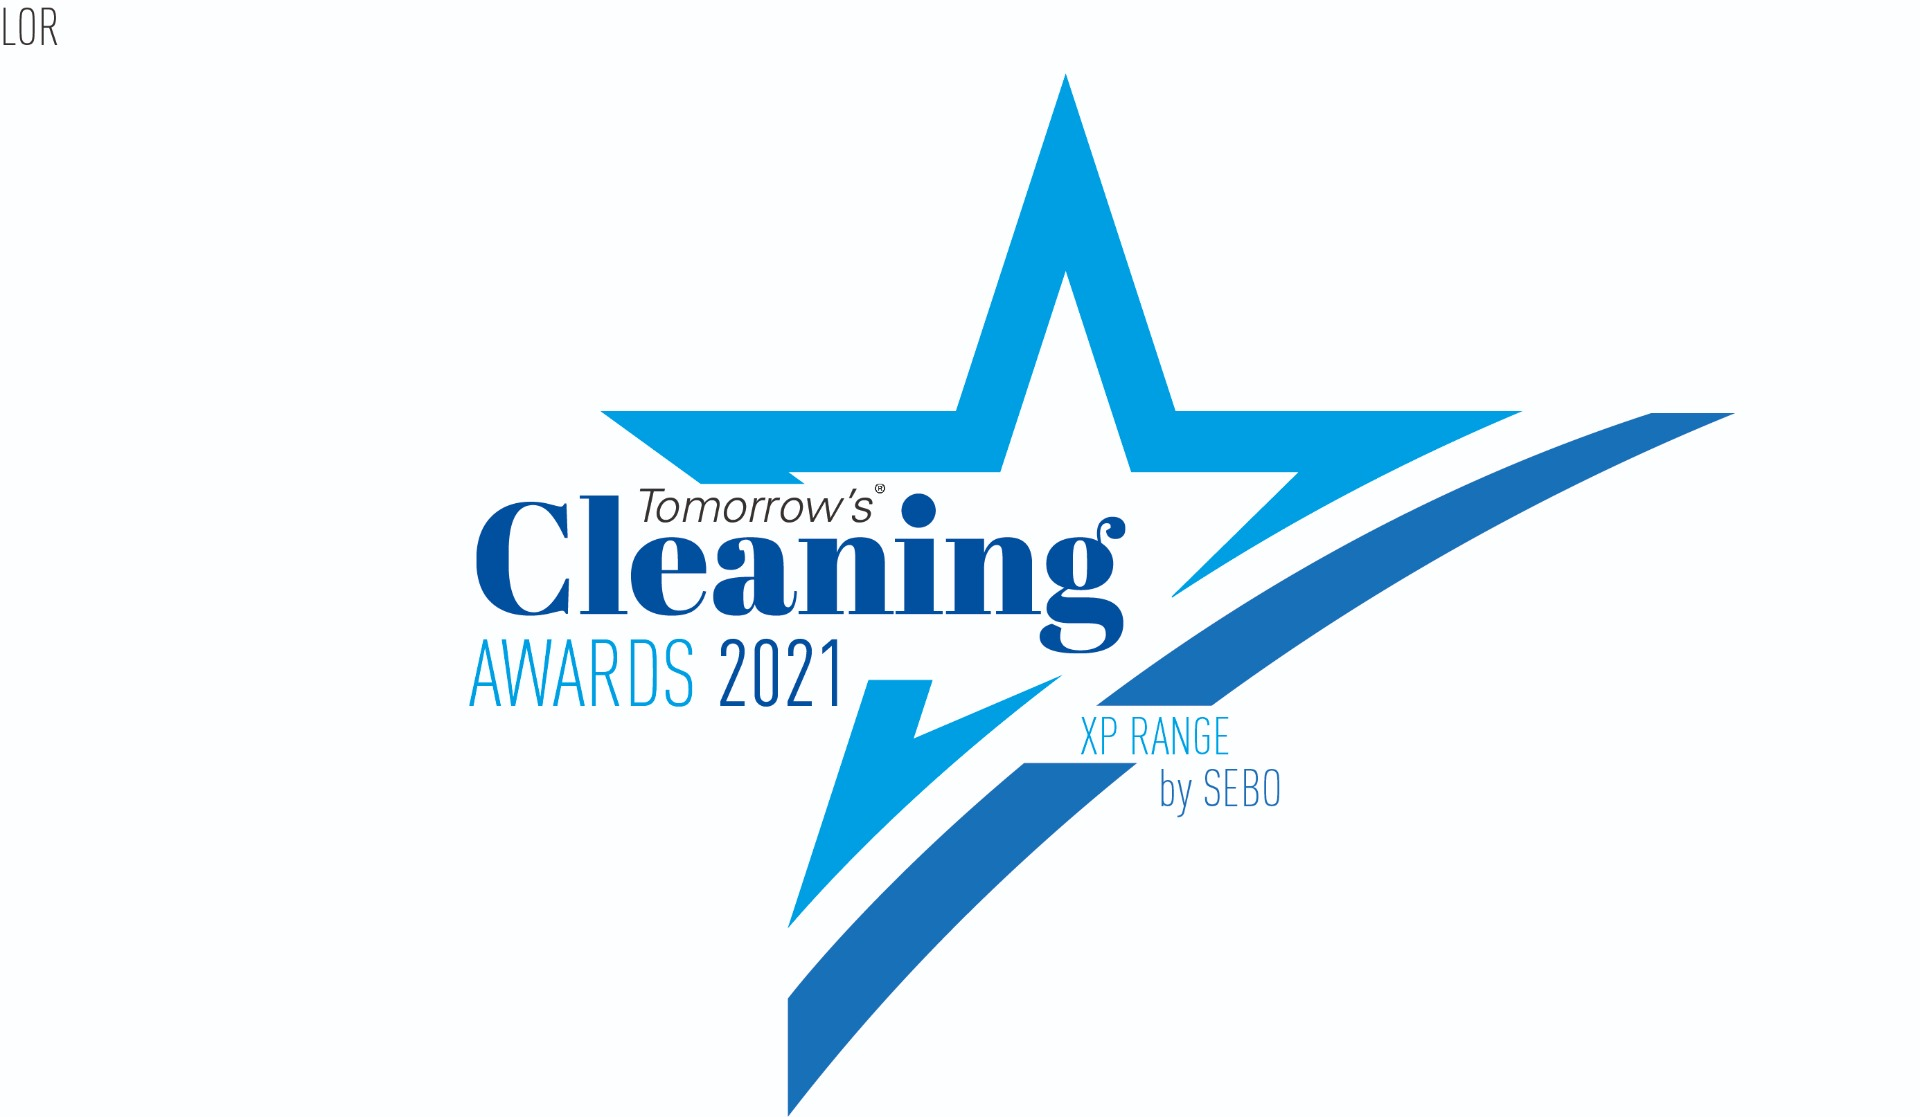 Tomorrow's Cleaning Awards 2021